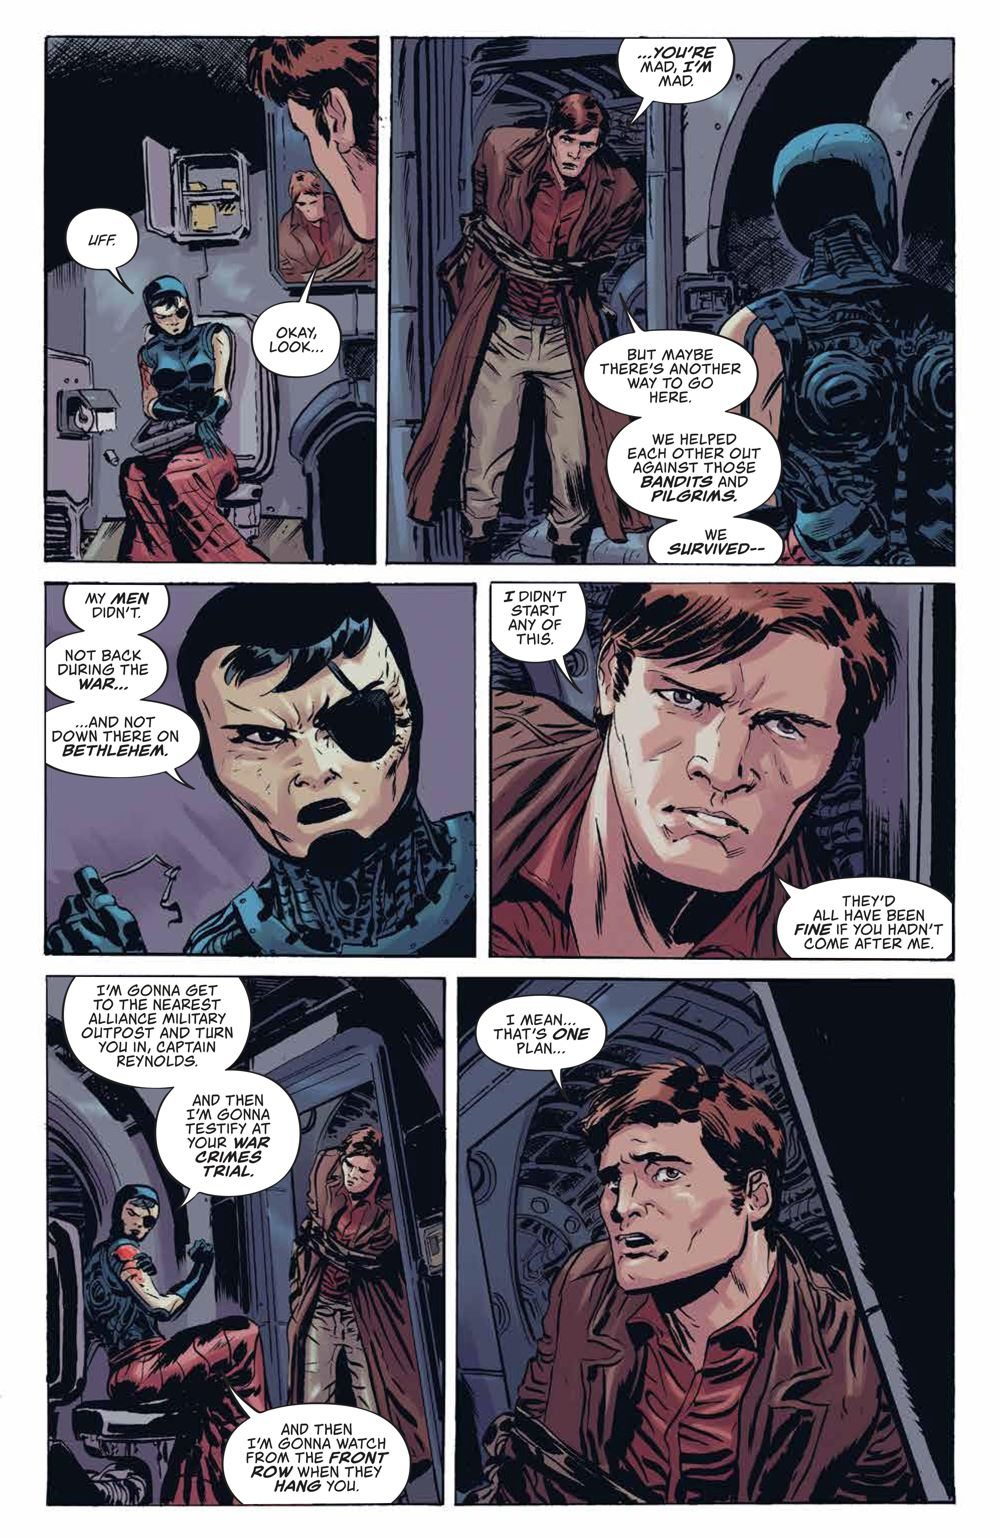 Firefly_UnificationWar_v2_SC_PRESS_13 ComicList Previews: FIREFLY THE UNIFICATION WAR VOLUME 2 TP